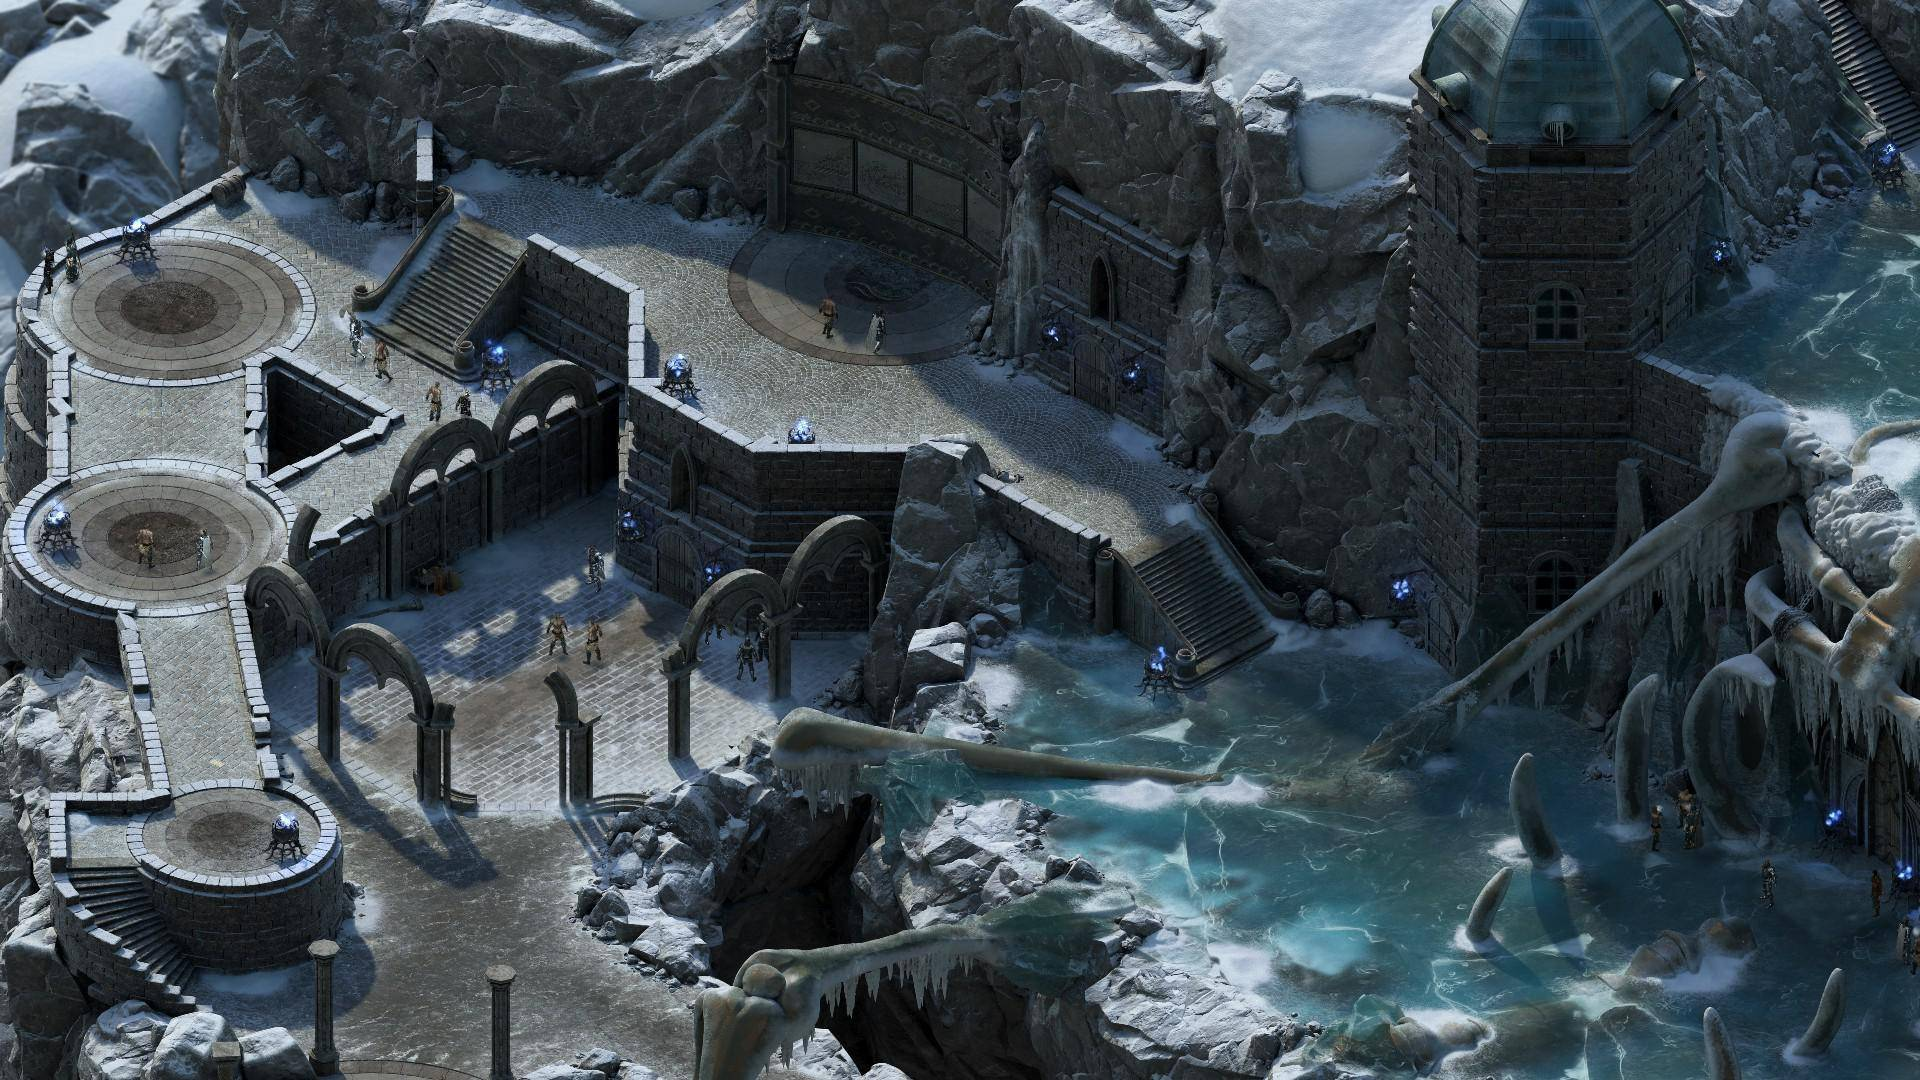 Trailer von Pillars of Eternity The White March Part 2  anschauen